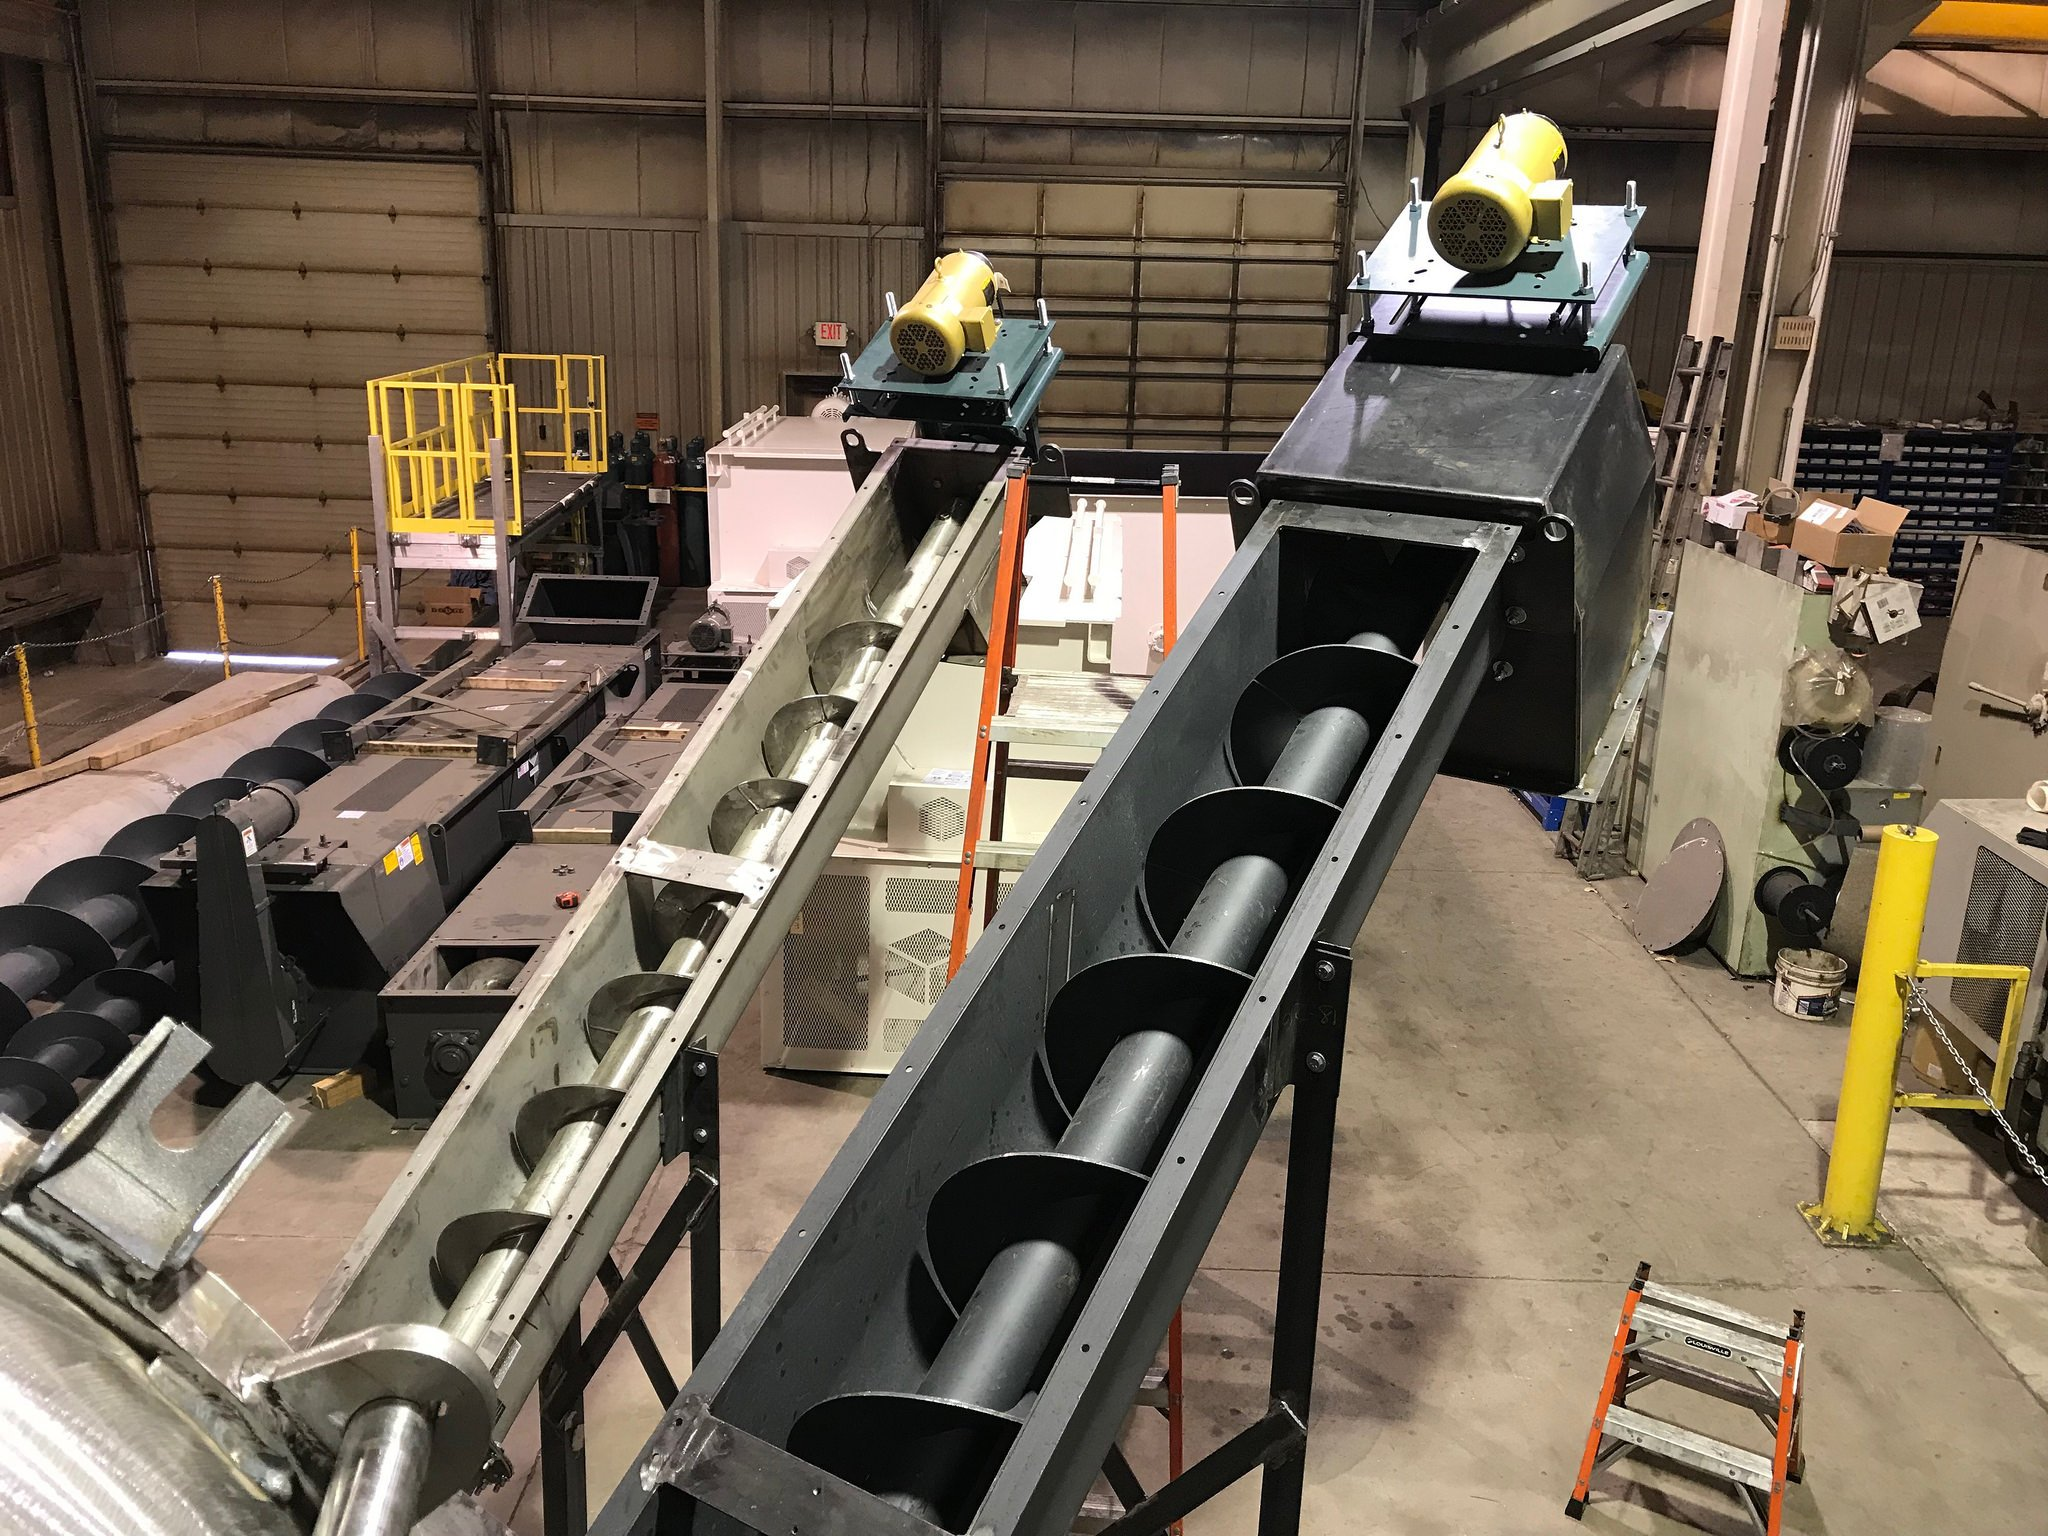 WASTE PACKAGING CONVEYOR-SCREW CONVEYOR  Our waste conveyors come in 12', 16', 20', & 24' lengths - standard. We can also provide custom screw lengths to fit in your facility; through walls, out to docks, etc. All our units have removable covers, Dodge bearings, Dodge gear boxes, and Baldor motors. Available in carbon steel [std.] and 304SS